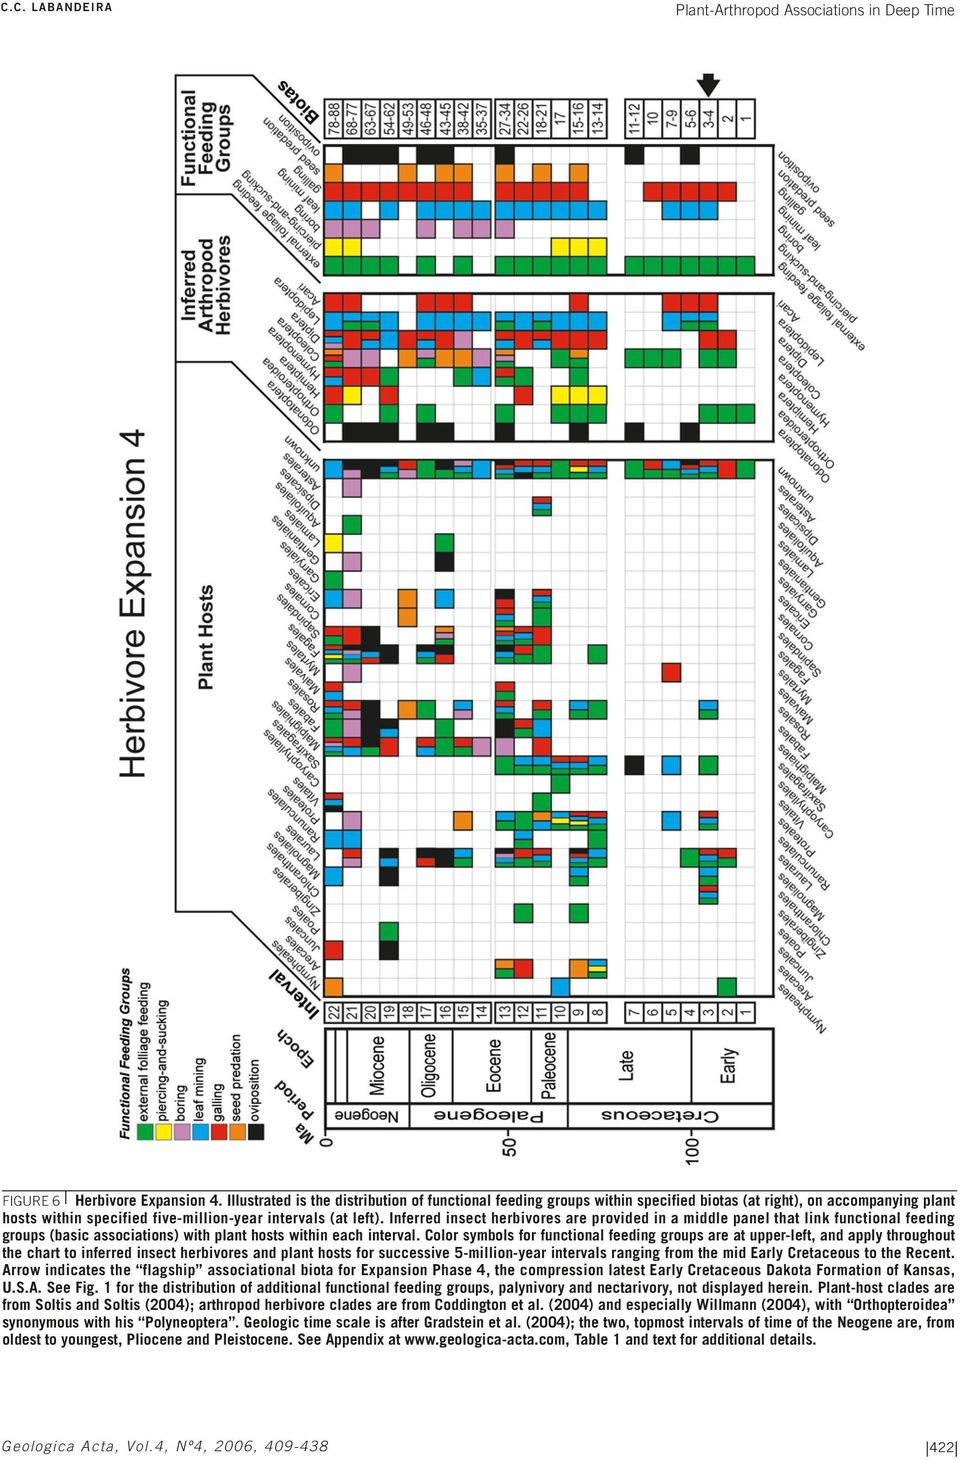 Inferred insect herbivores are provided in a middle panel that link functional feeding groups (basic associations) with plant hosts within each interval.